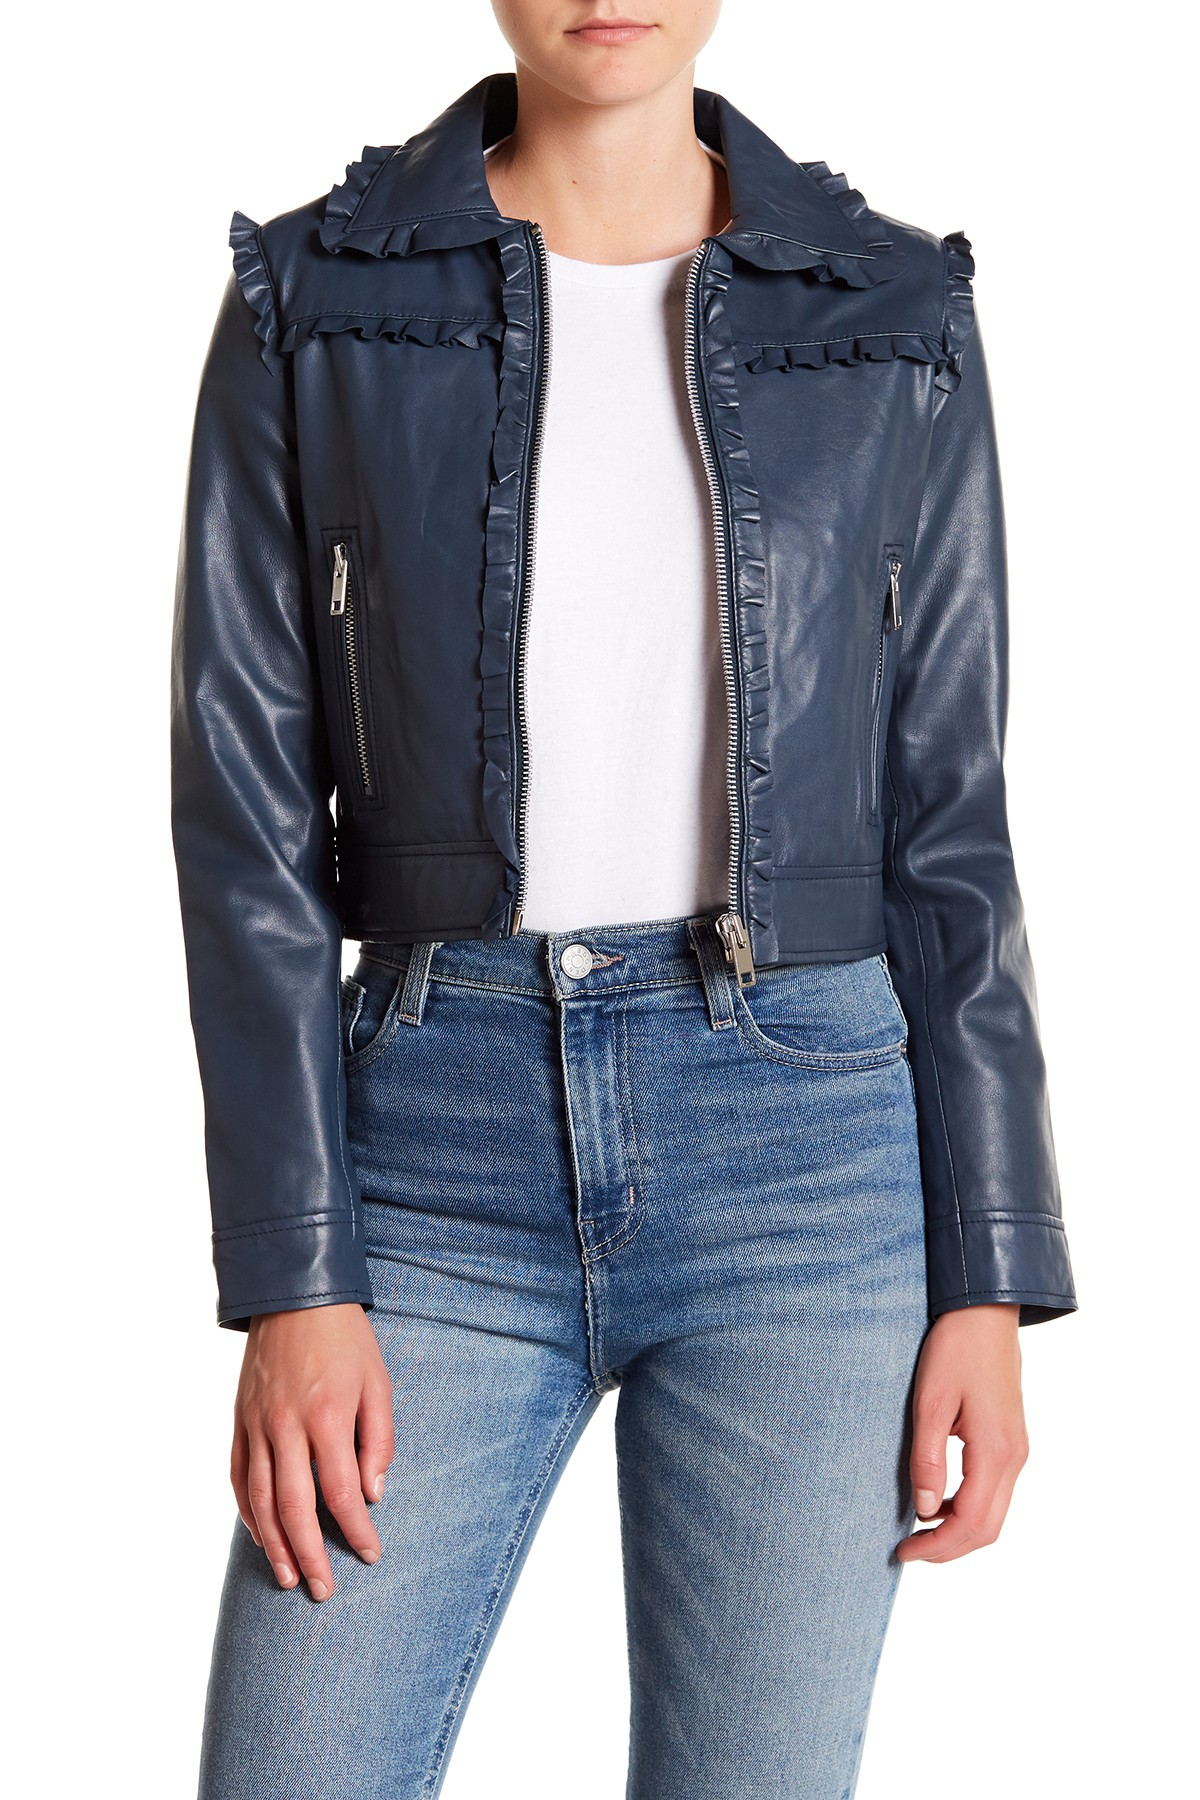 Walter Baker Jessie Ruffle Trimmed Leather Jacket (With